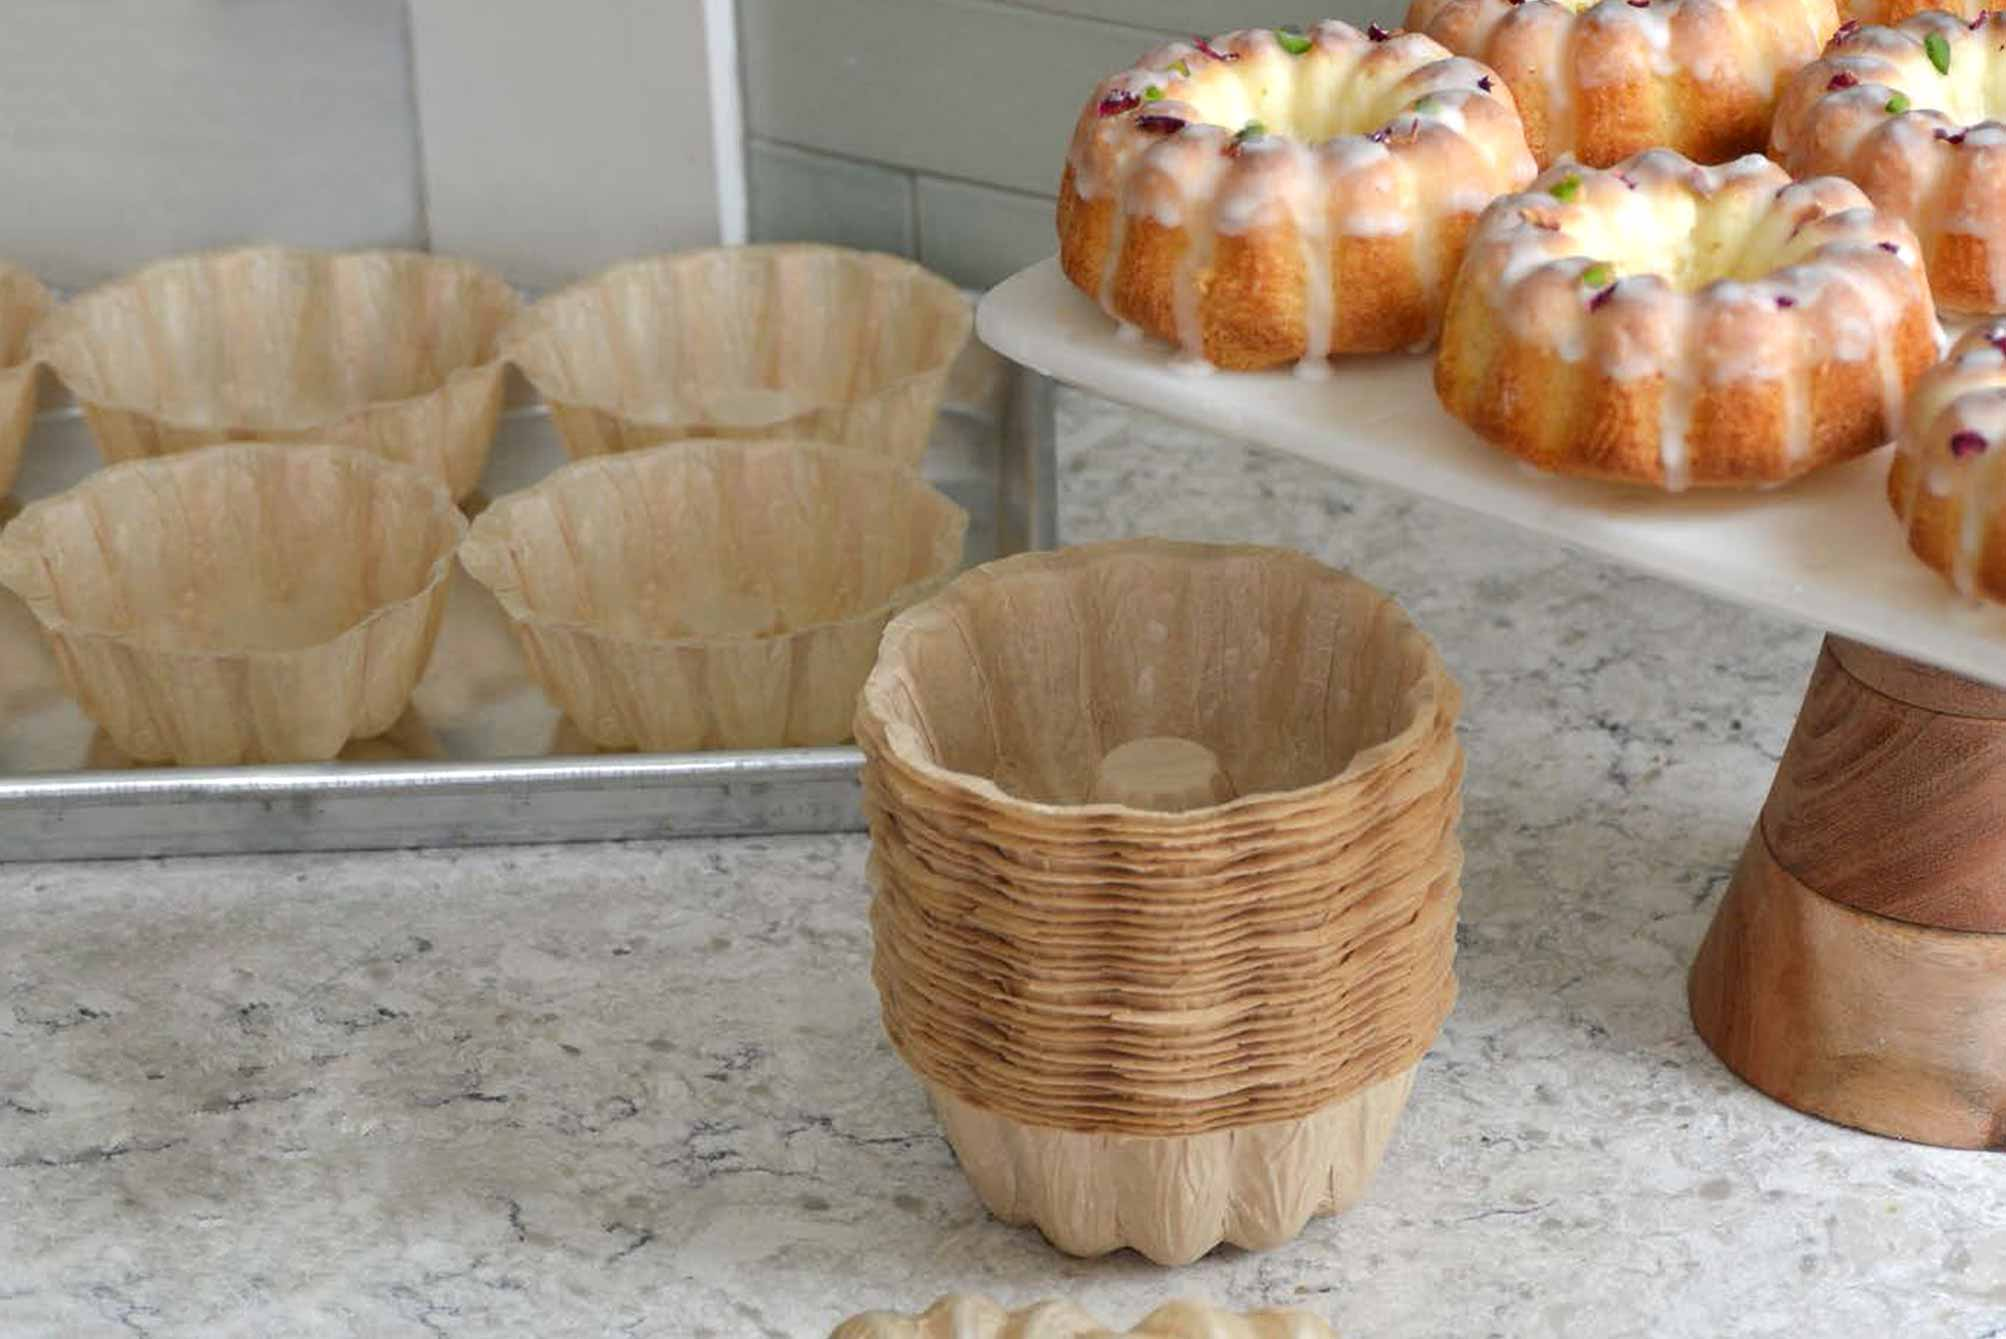 Novacart Mini Bundt baking molds